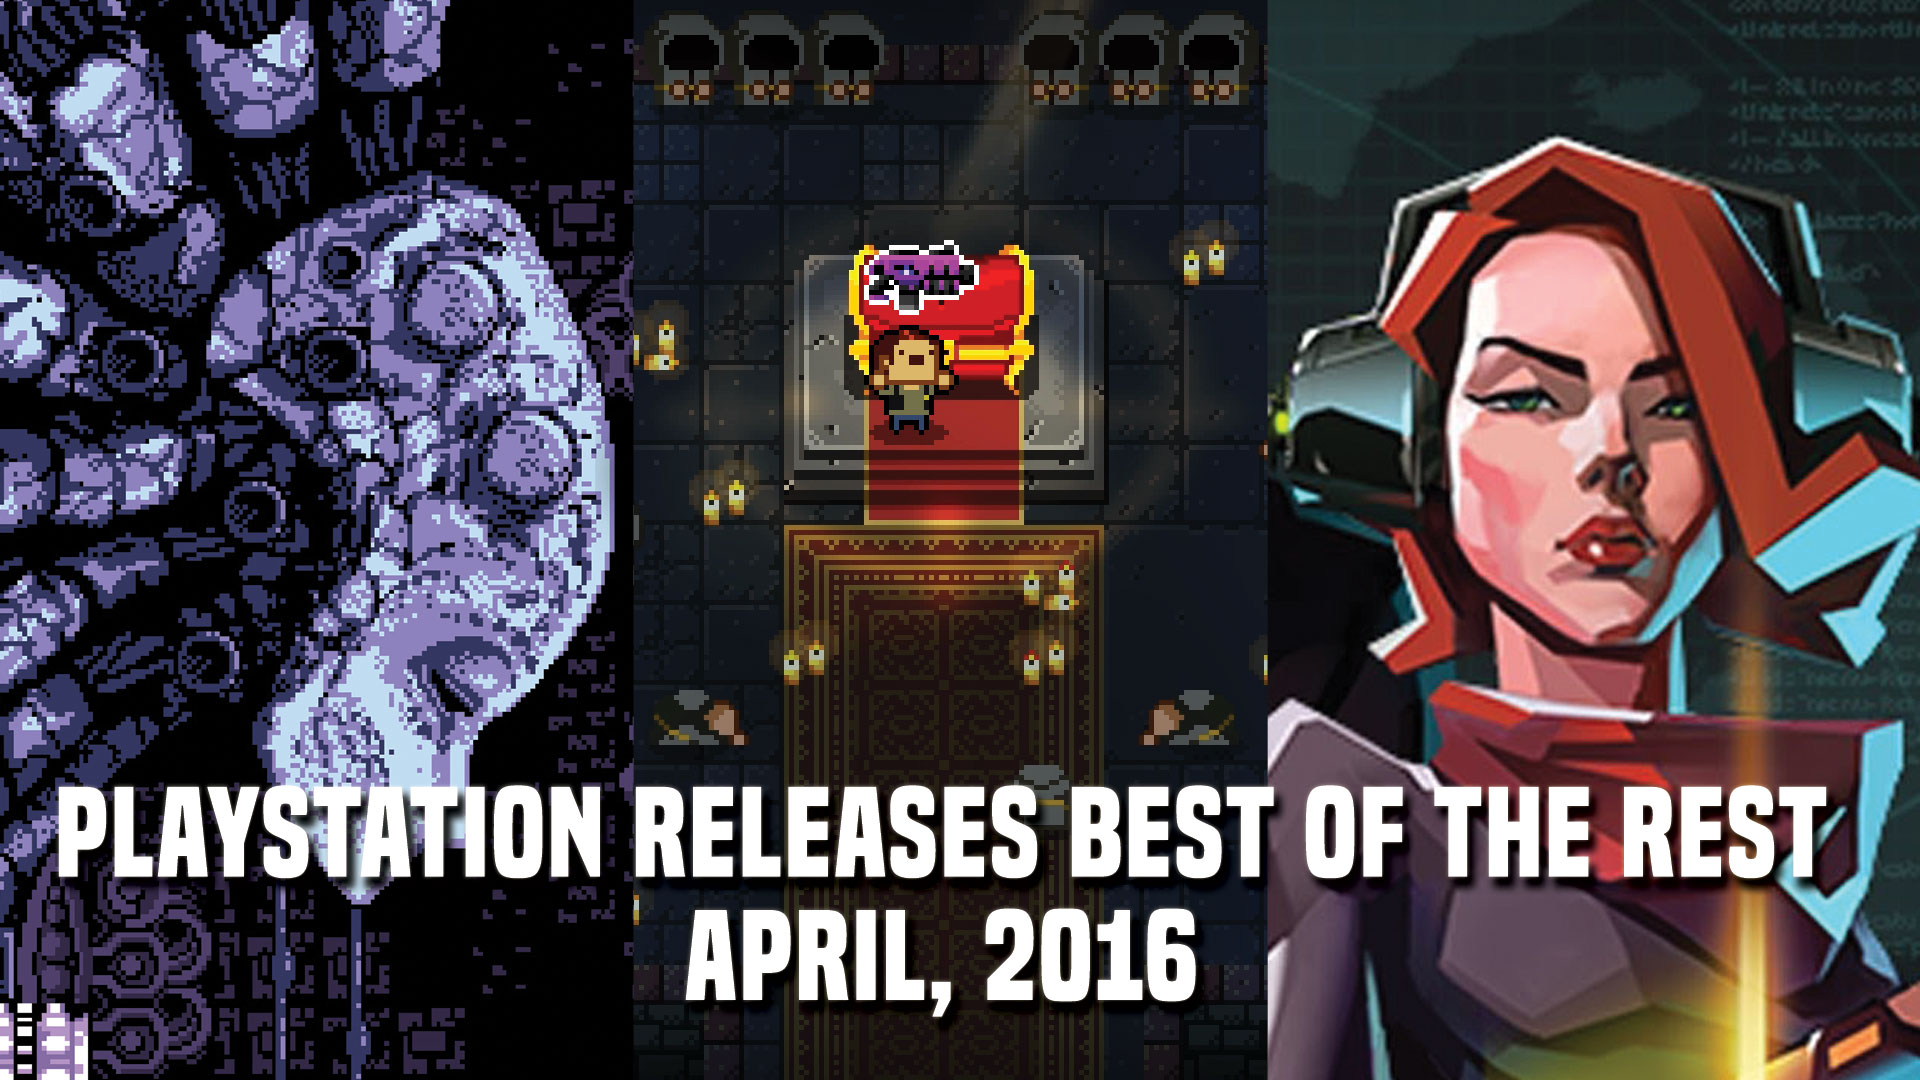 PlayStation Releases: Best of the Rest for April 2016